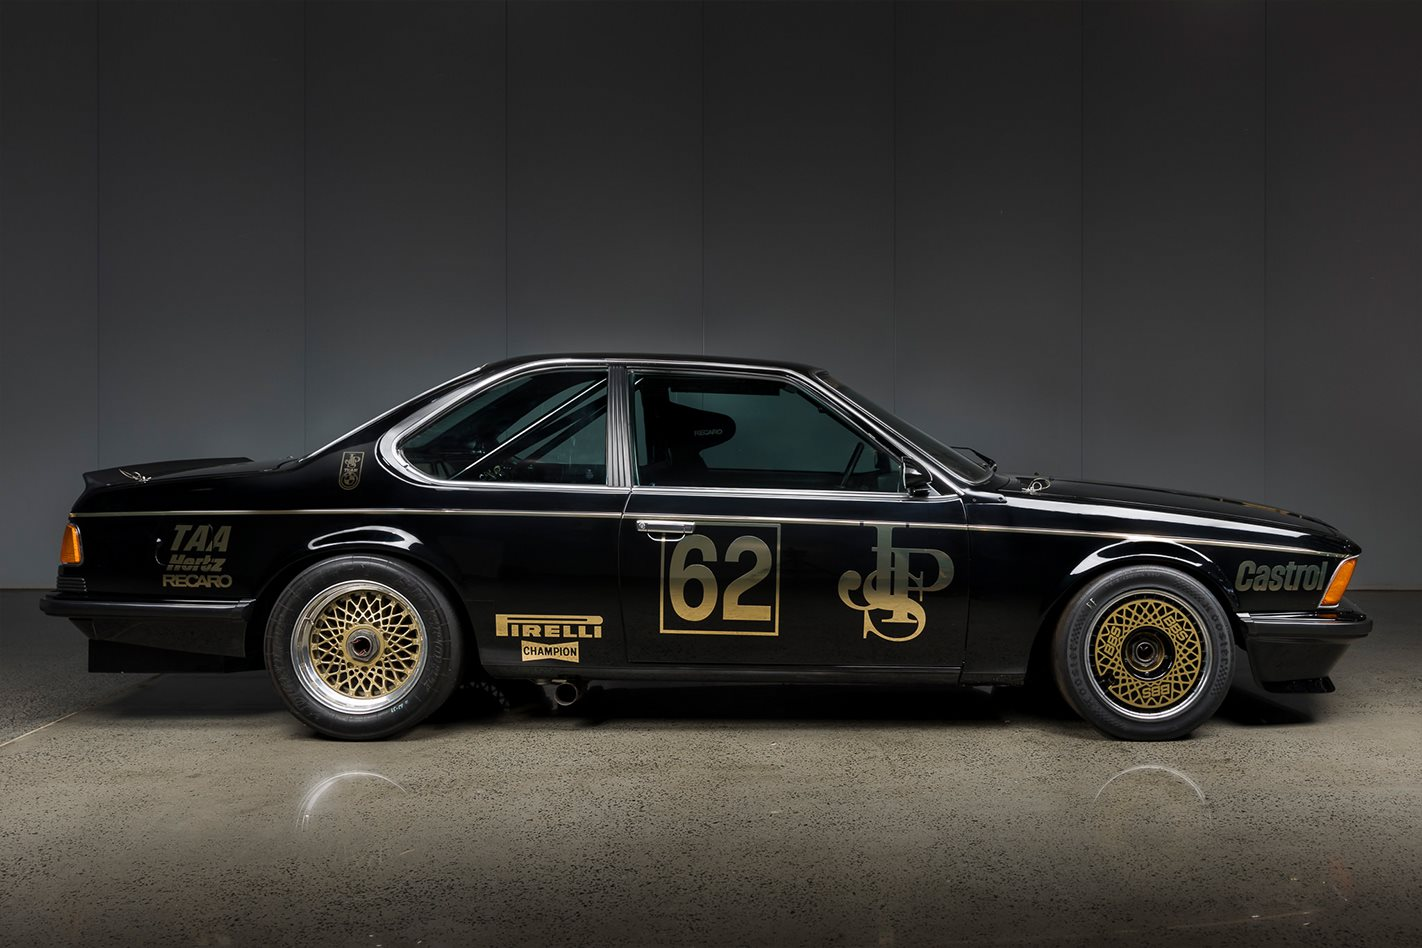 Jim Richards Bmw 635 Group A Racer Is Up For Grabs